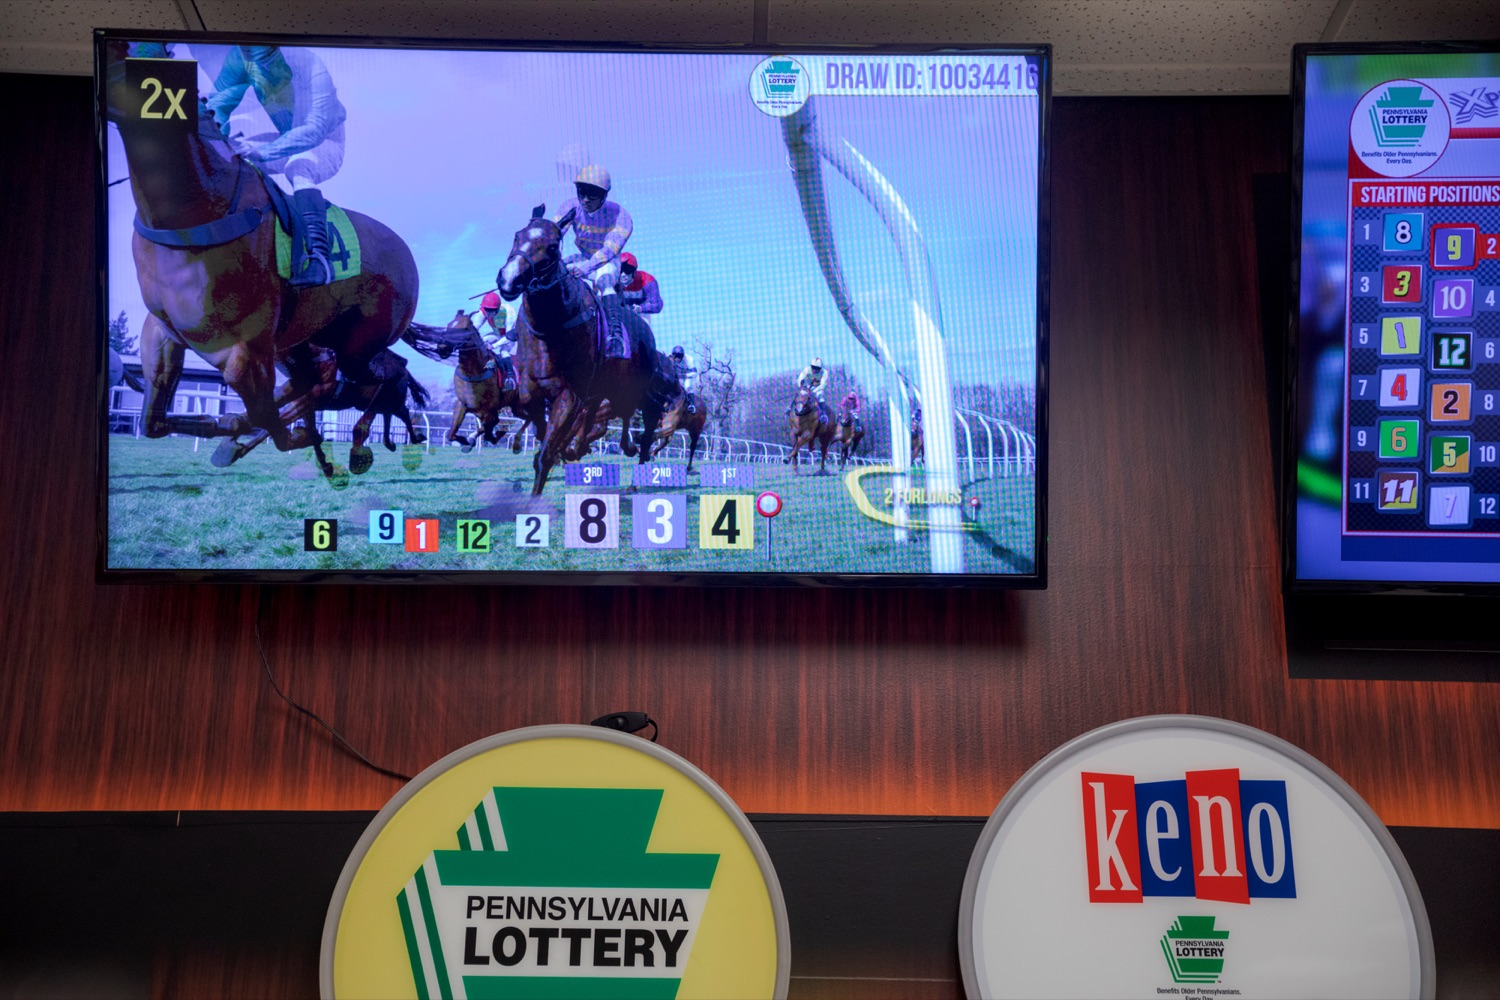 "<a href=""https://filesource.wostreaming.net/commonwealthofpa/photo/17265_Lottery_Derby_Cash_NK_004.JPG"" target=""_blank"">⇣ Download Photo<br></a>The Pennsylvania Lottery today launched Derby Cash Horse Racing, a new and highly anticipated virtual horse racing game that will have players on the edge of their seats. Every five minutes, players have the chance to win up to $800,000 on a $1 play. Purchases can be made anywhere Lottery games are sold and races can be watched at nearly 2,000 of the Lotterys retailers, mainly at bars and restaurants."